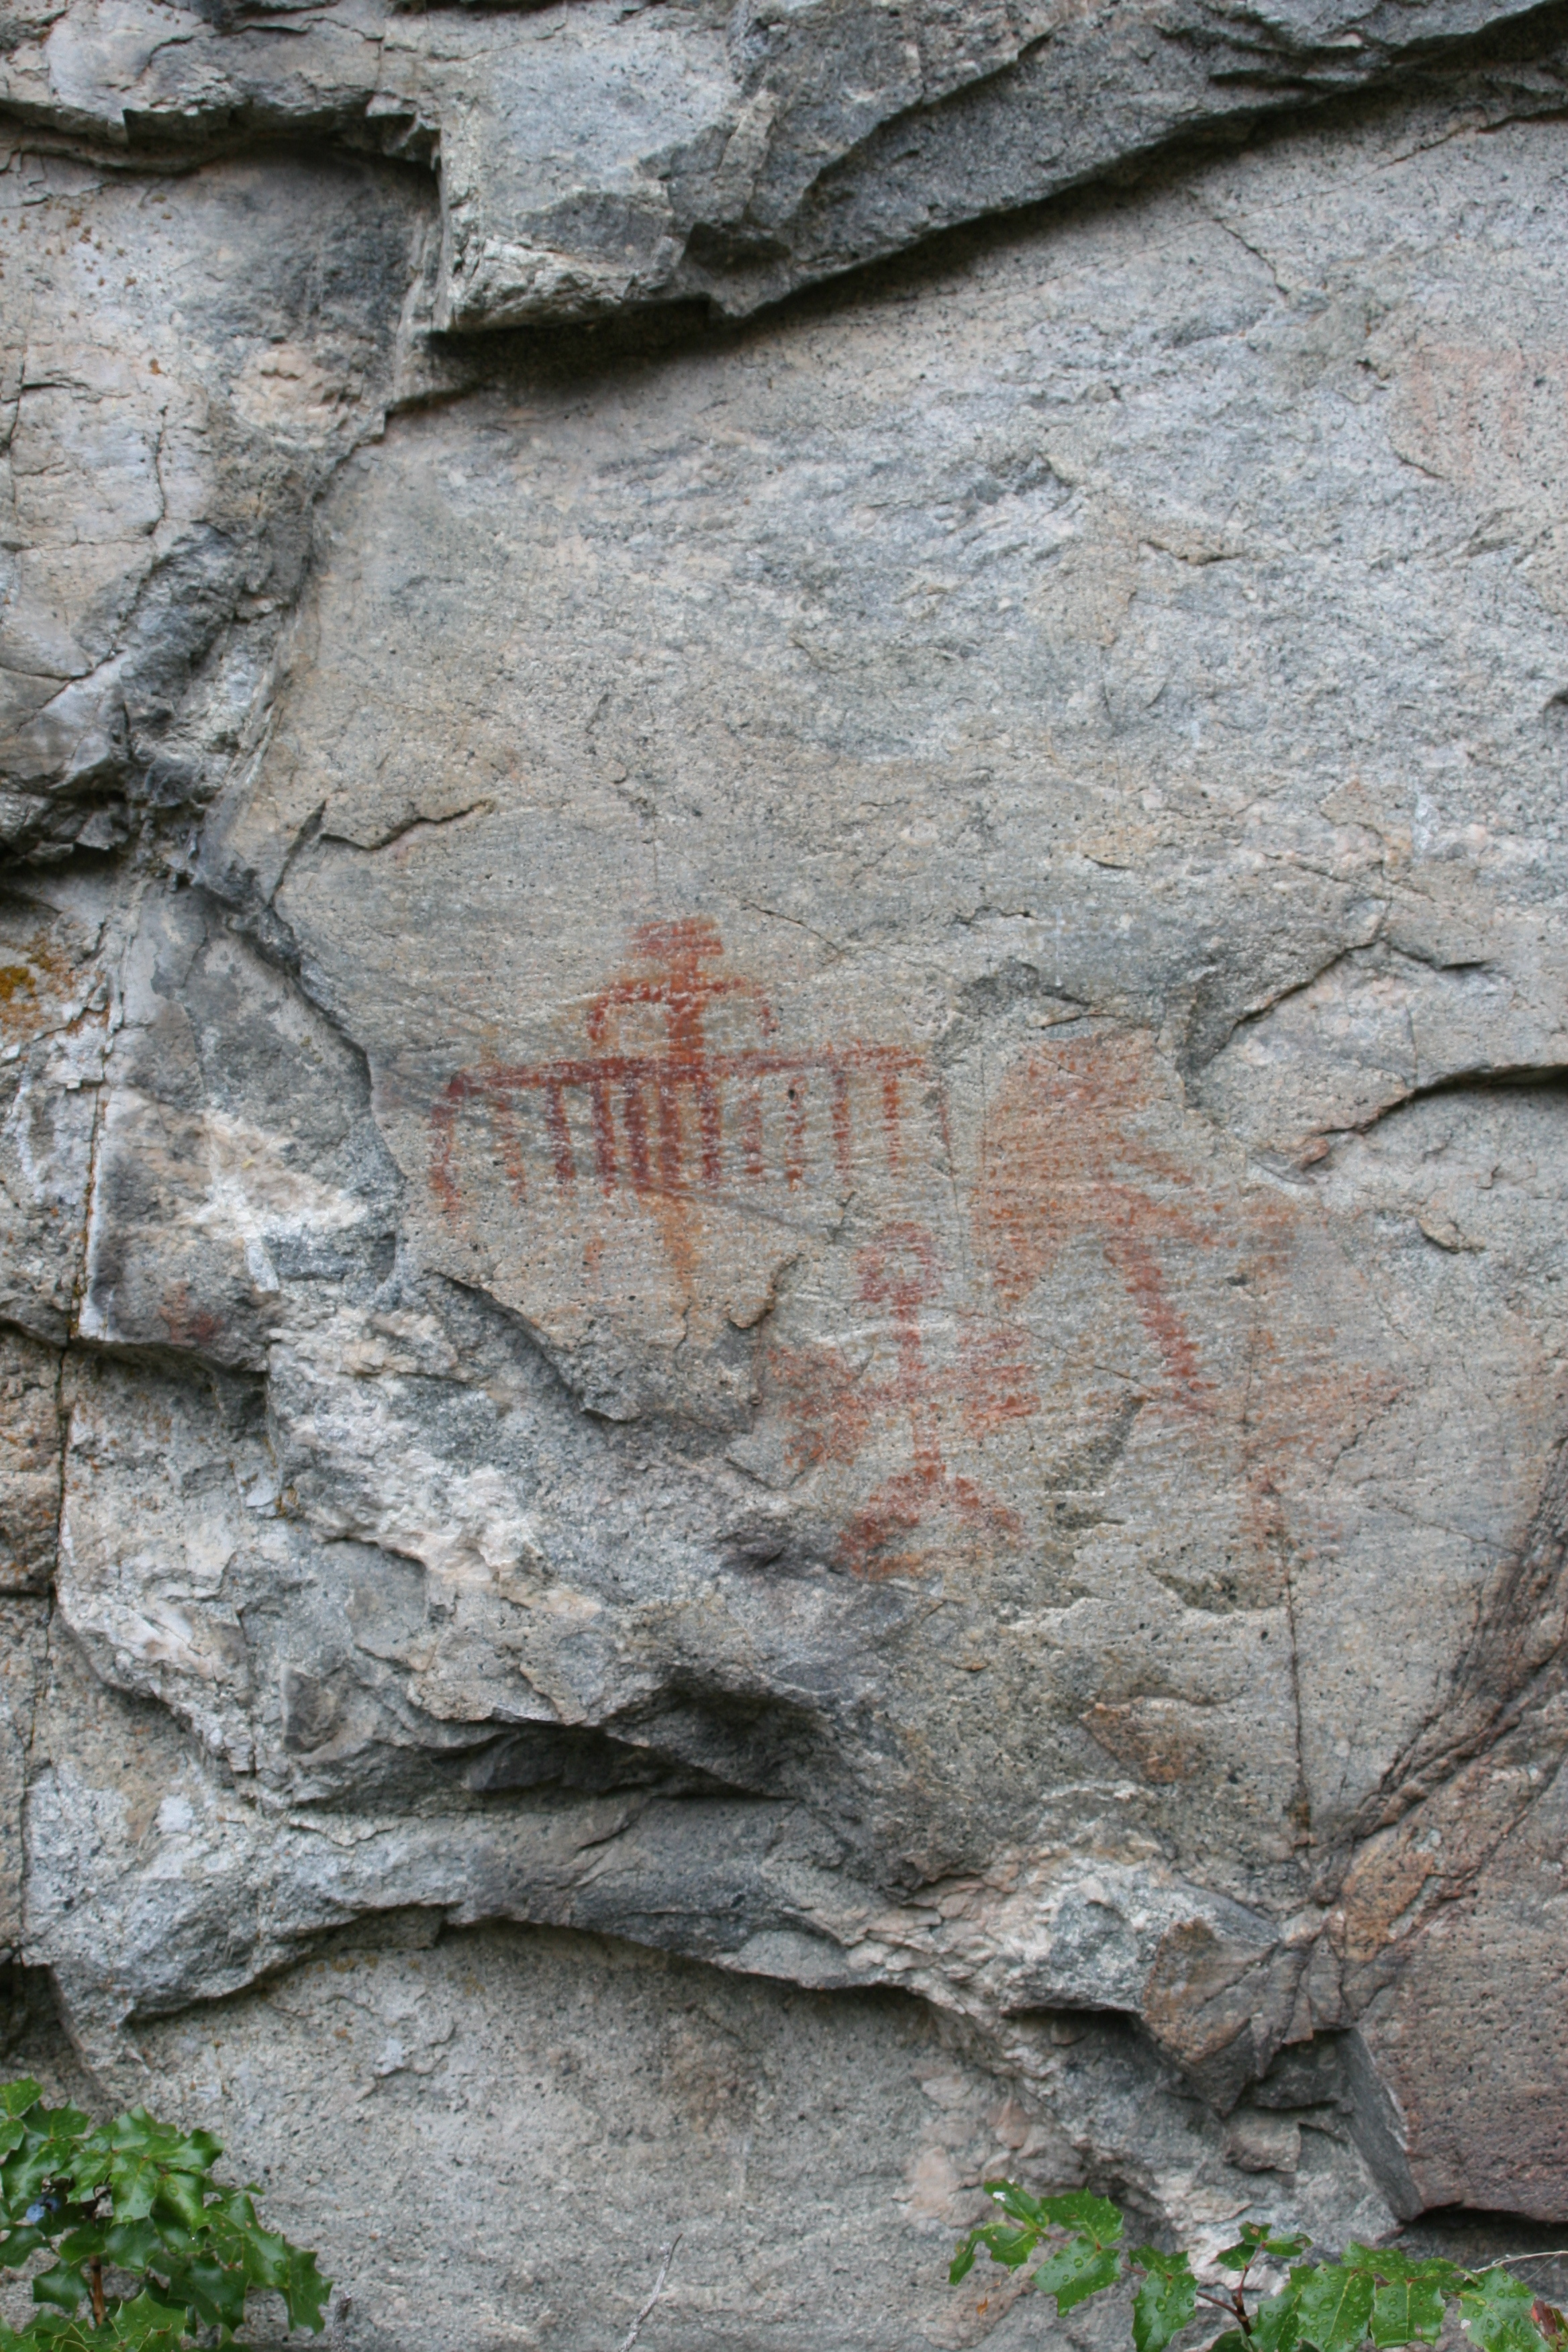 400 year old Native pictographs back in the Bluffs. This inspired the name Painted Rock and Red Icon.